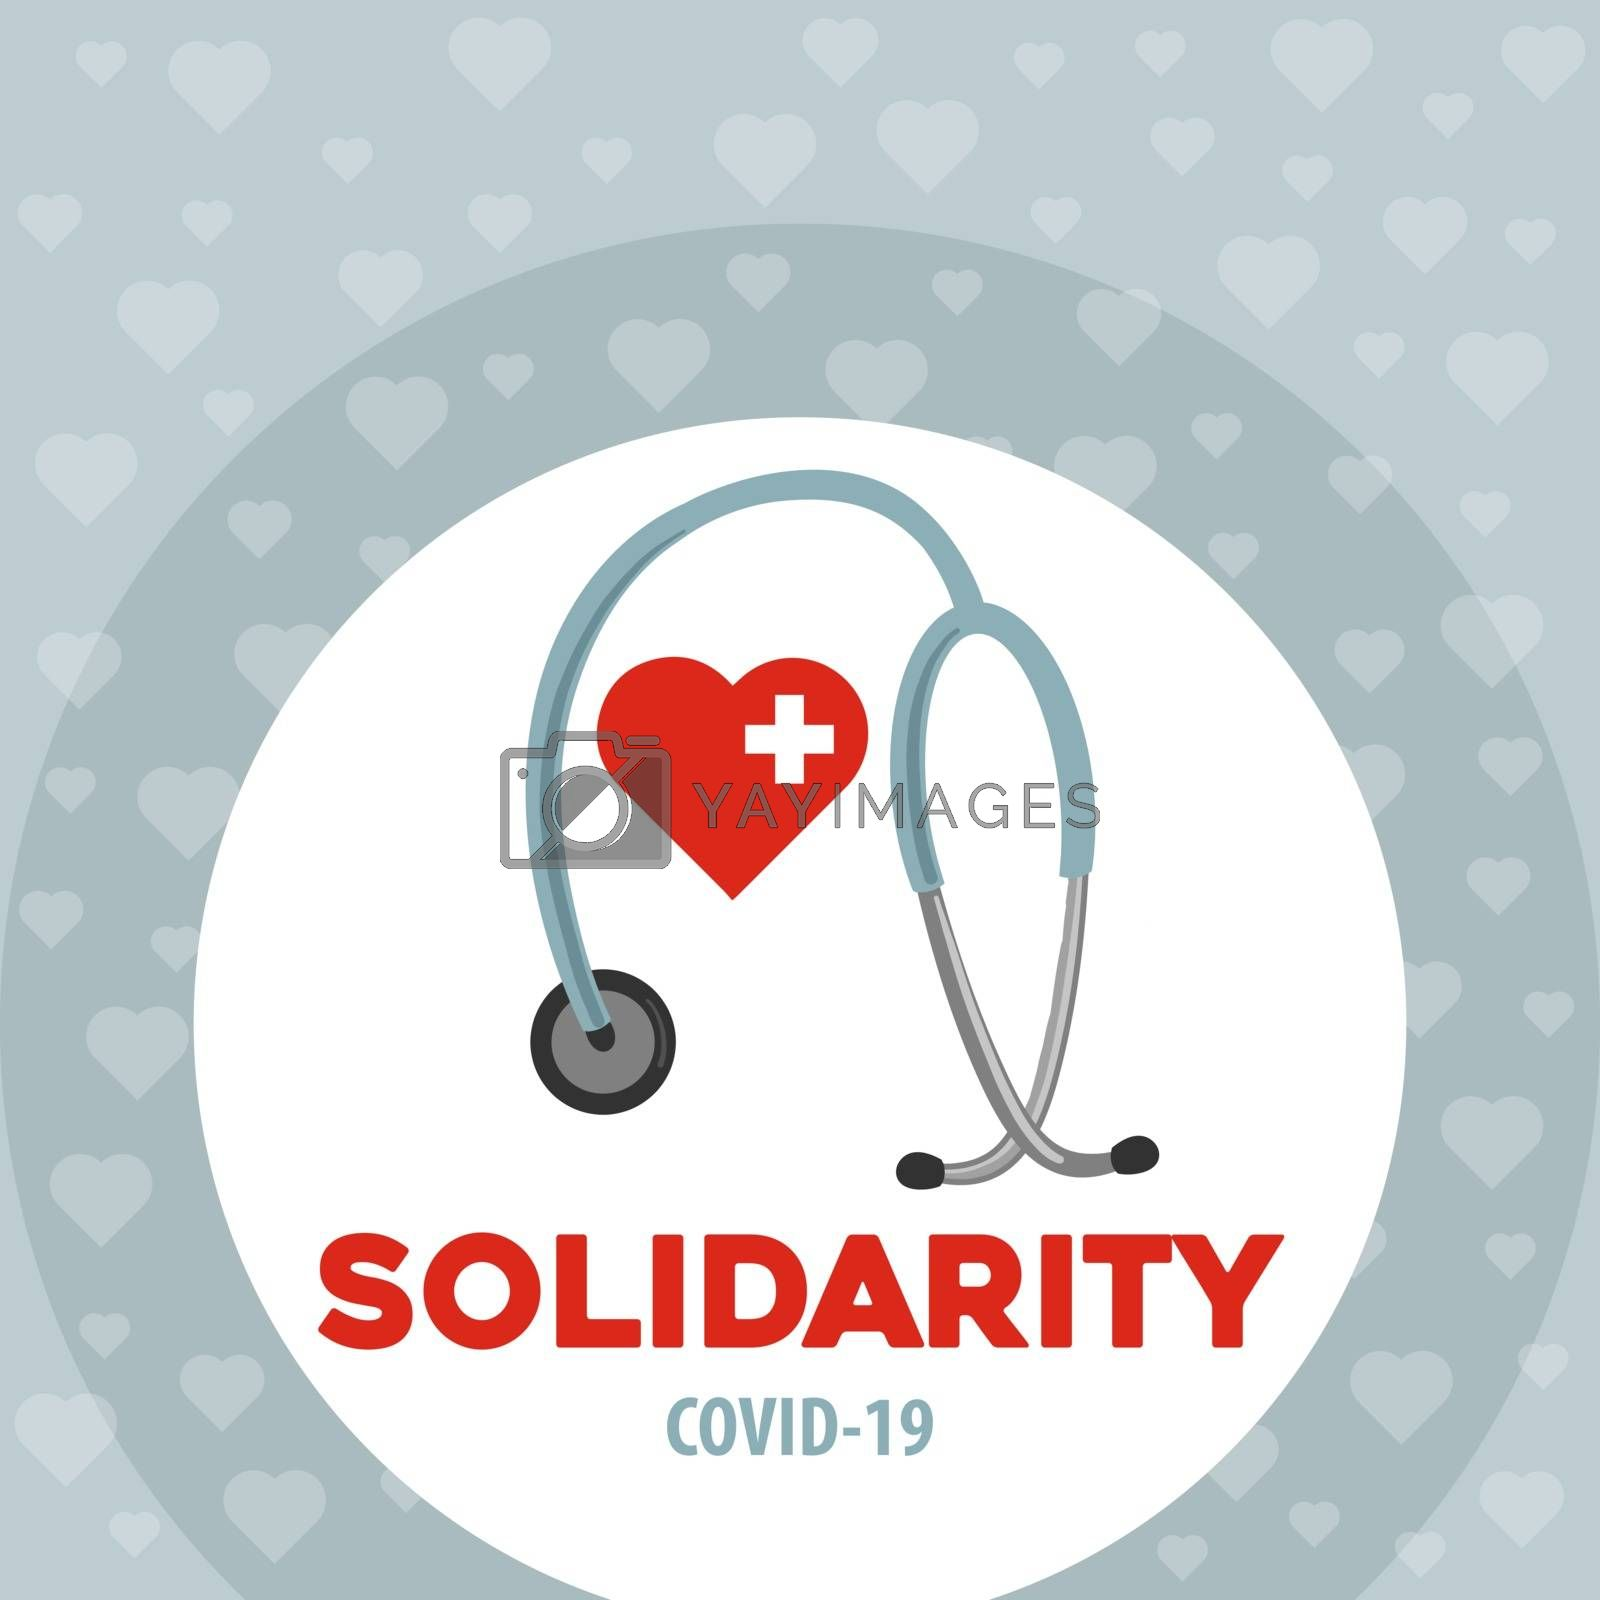 Solidarity with doctors. Coronavirus poster. Covid-19 solidarity by balasoiu